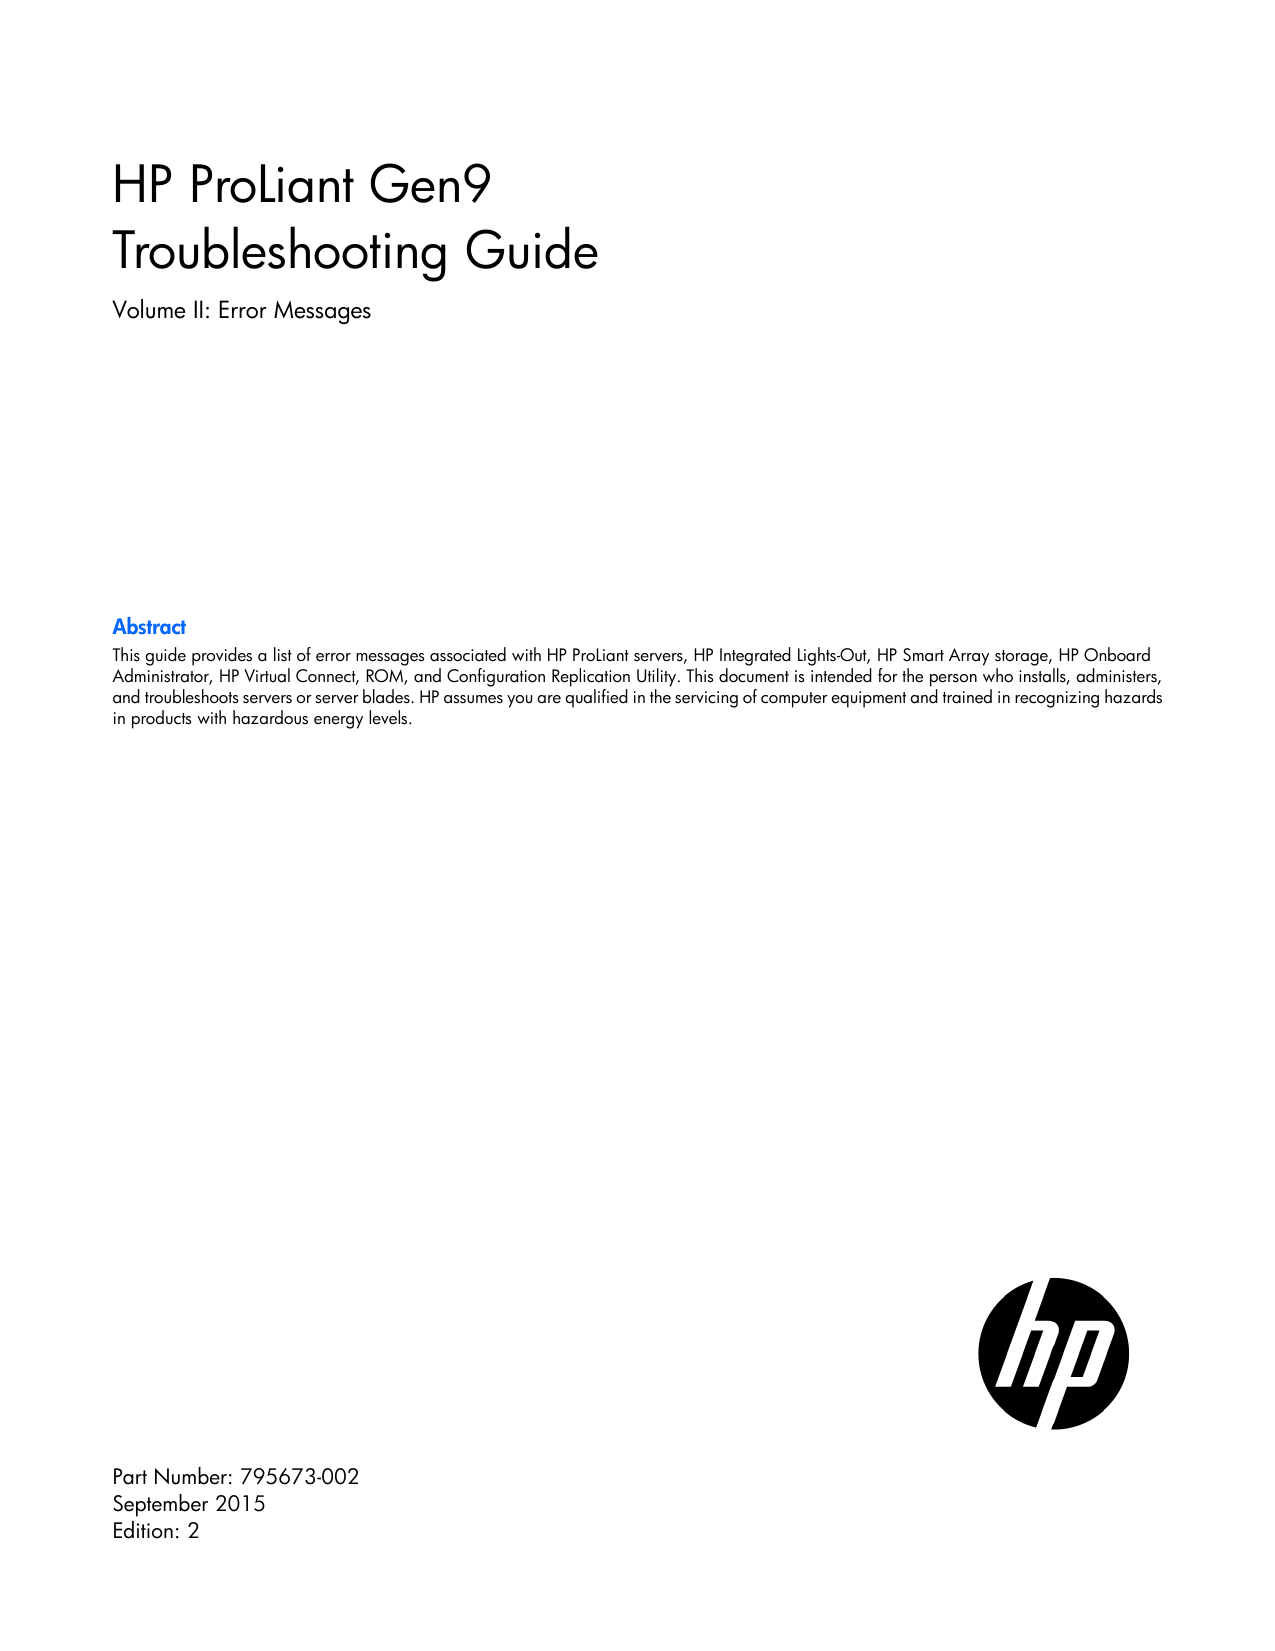 HPE ProLiant Gen9 Troubleshooting Guide Volume II